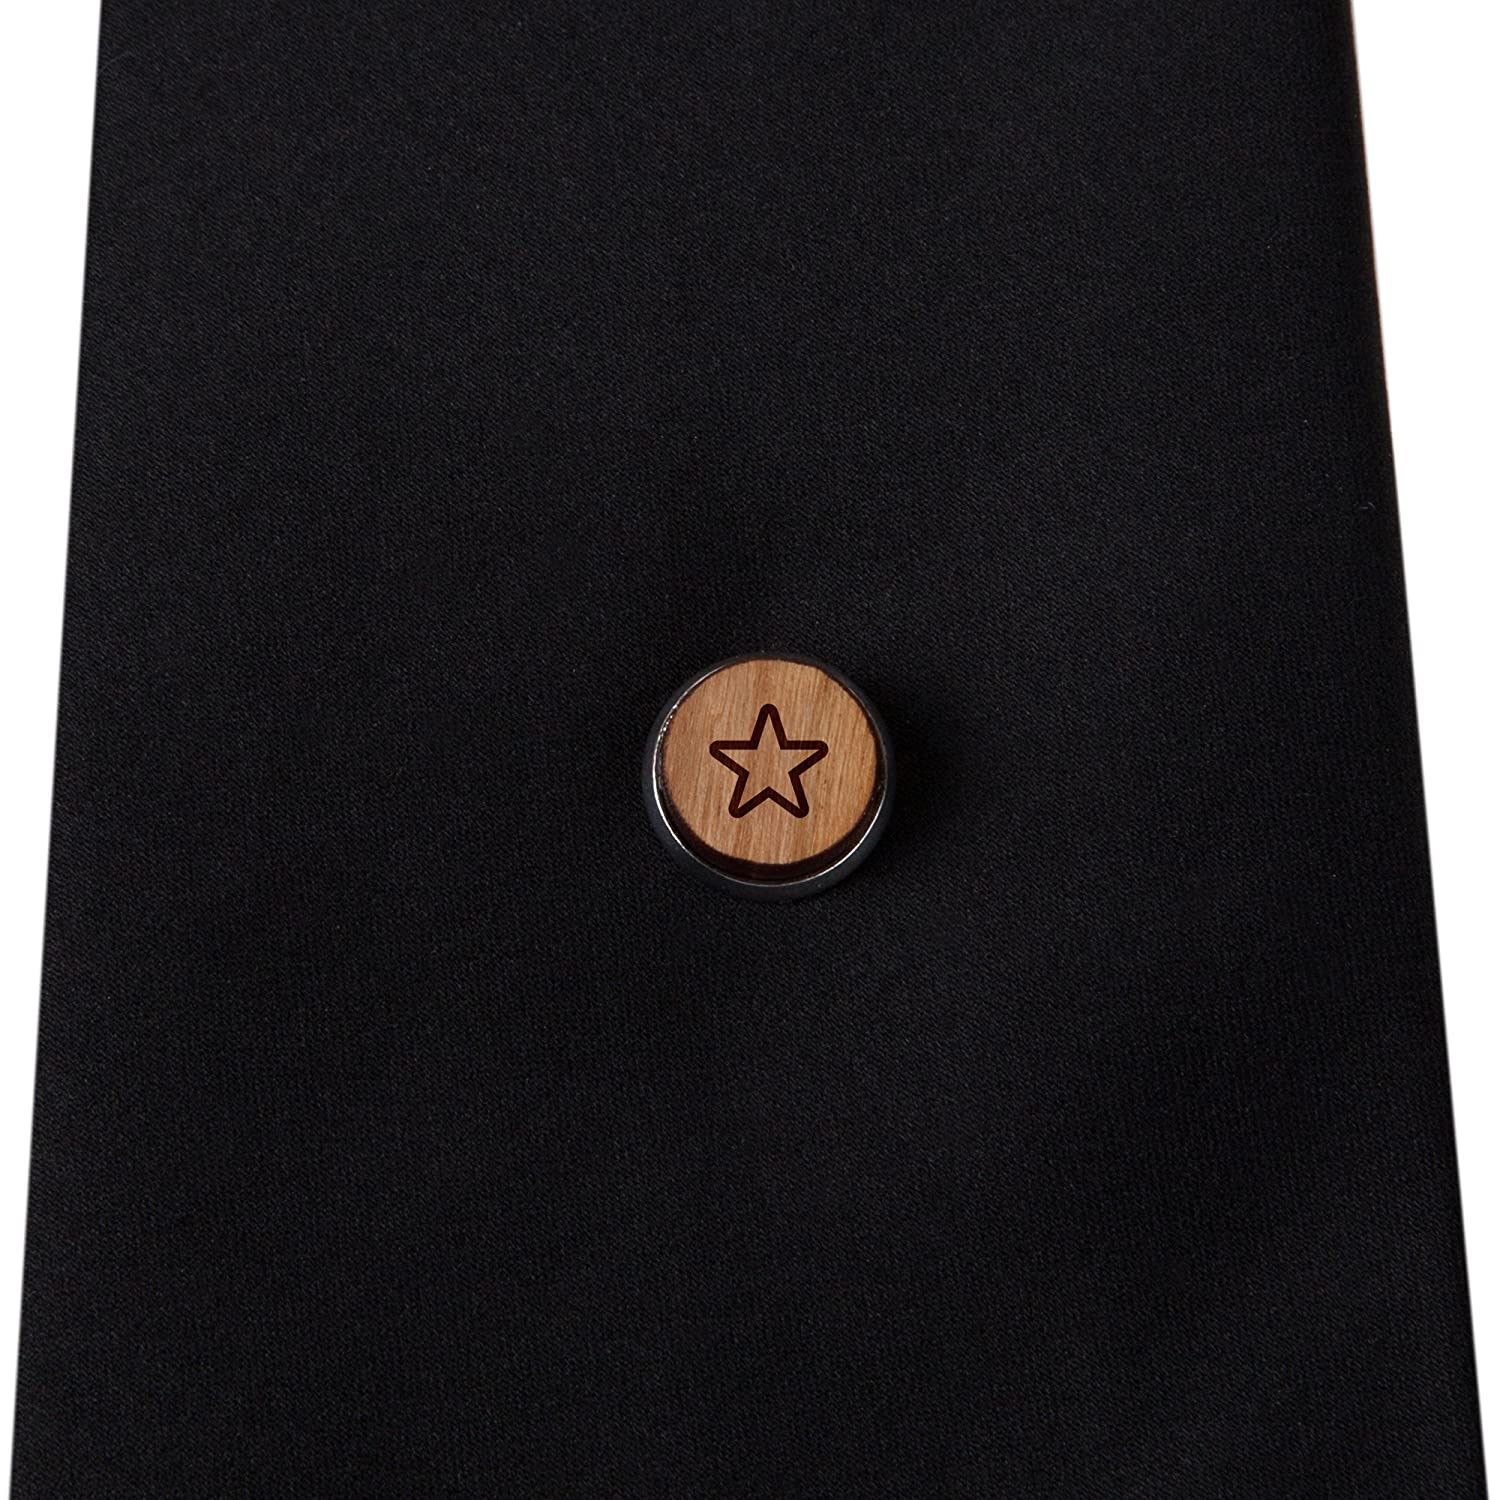 12Mm Simple Tie Clip with Laser Engraved Design Engraved Tie Tack Gift Star Stylish Cherry Wood Tie Tack